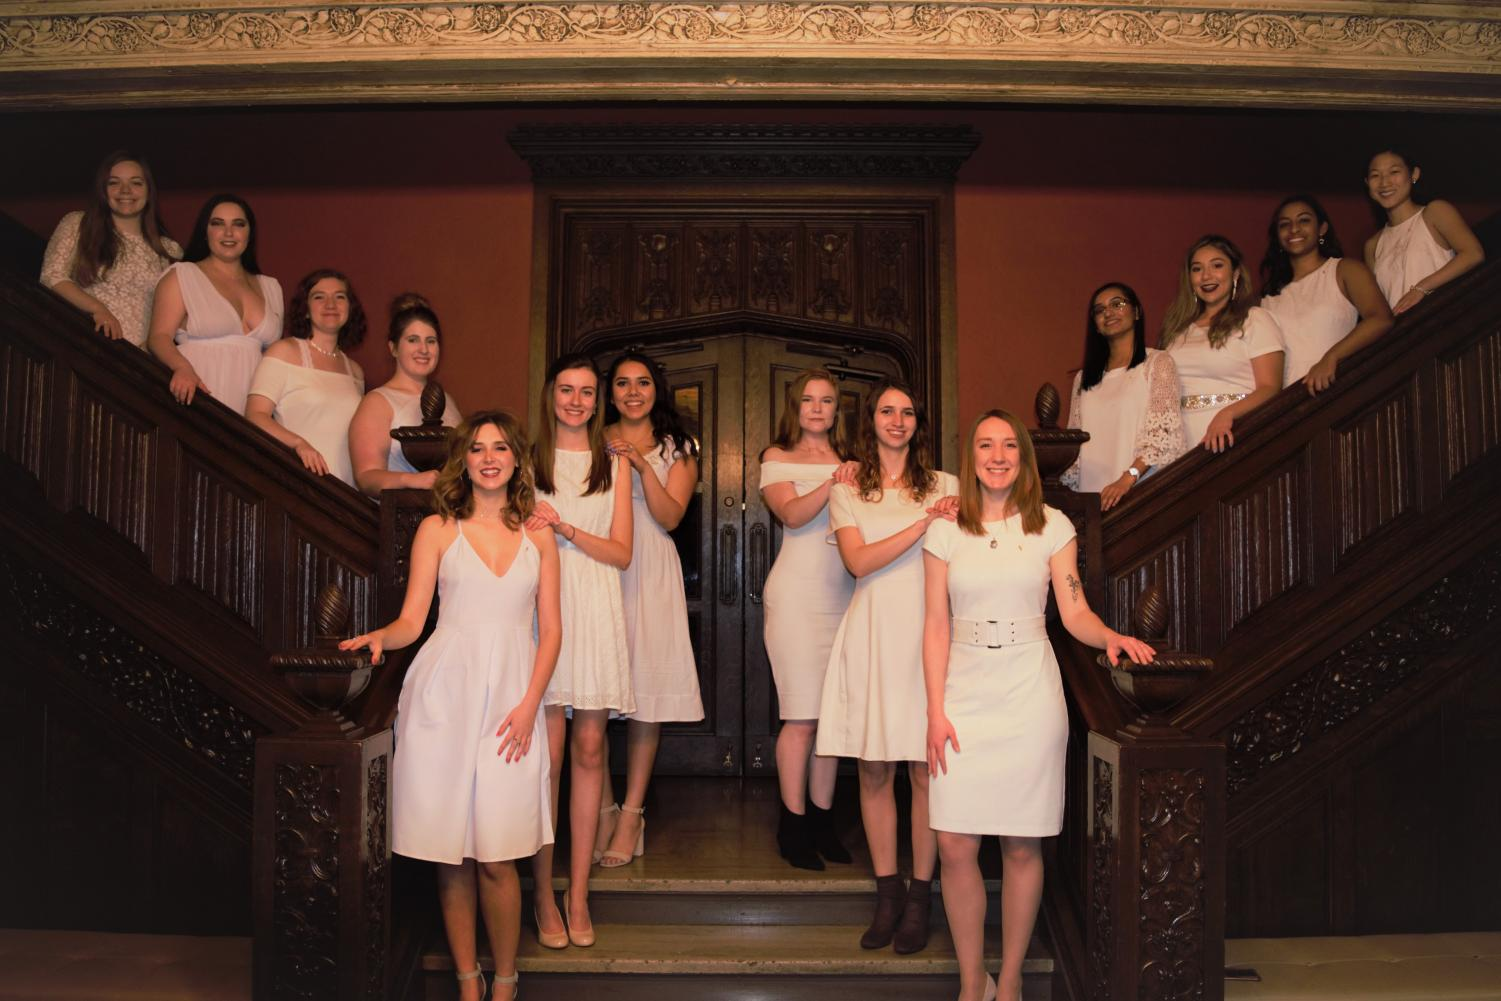 Alpha Sigma Kappa is the newest sorority to be initiated with DePaul's Panhellenic Council.